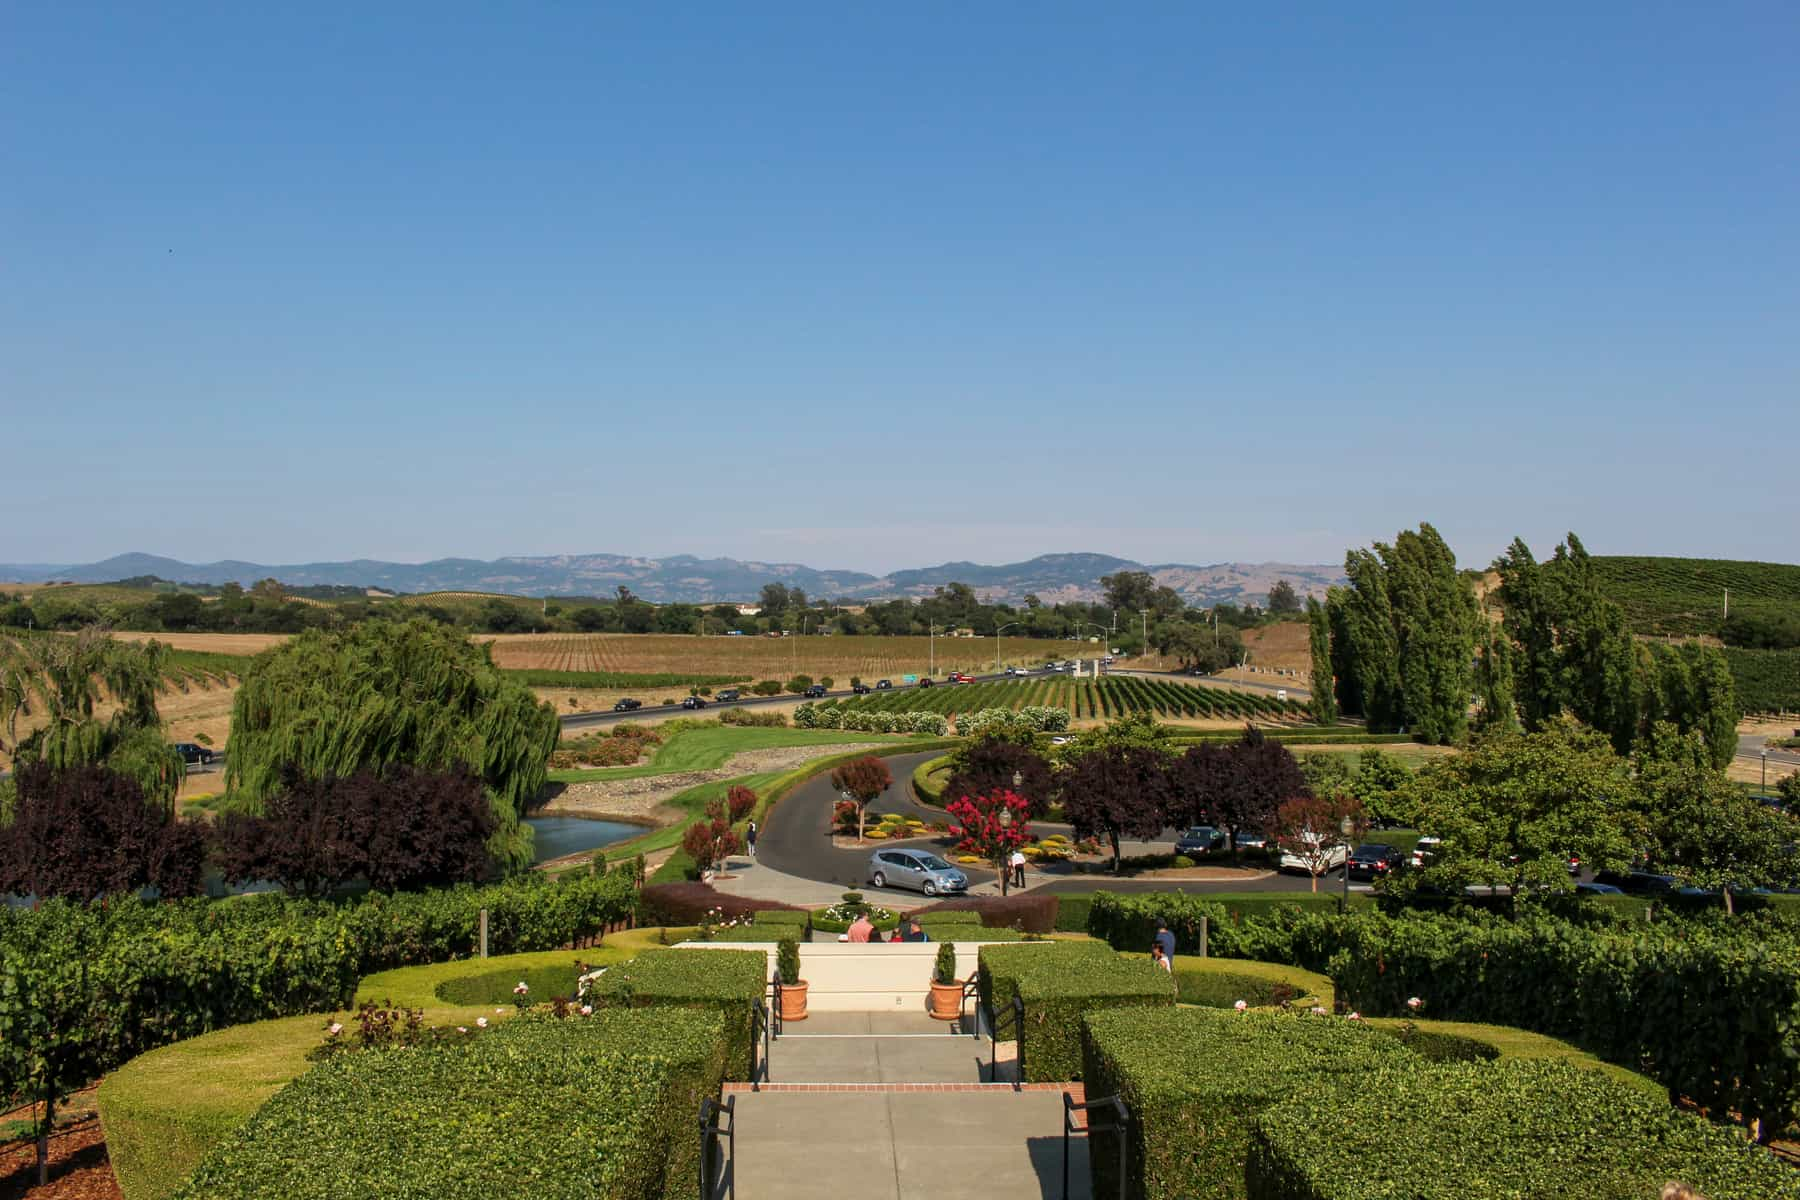 Domain Carnerous View of Napa Valley